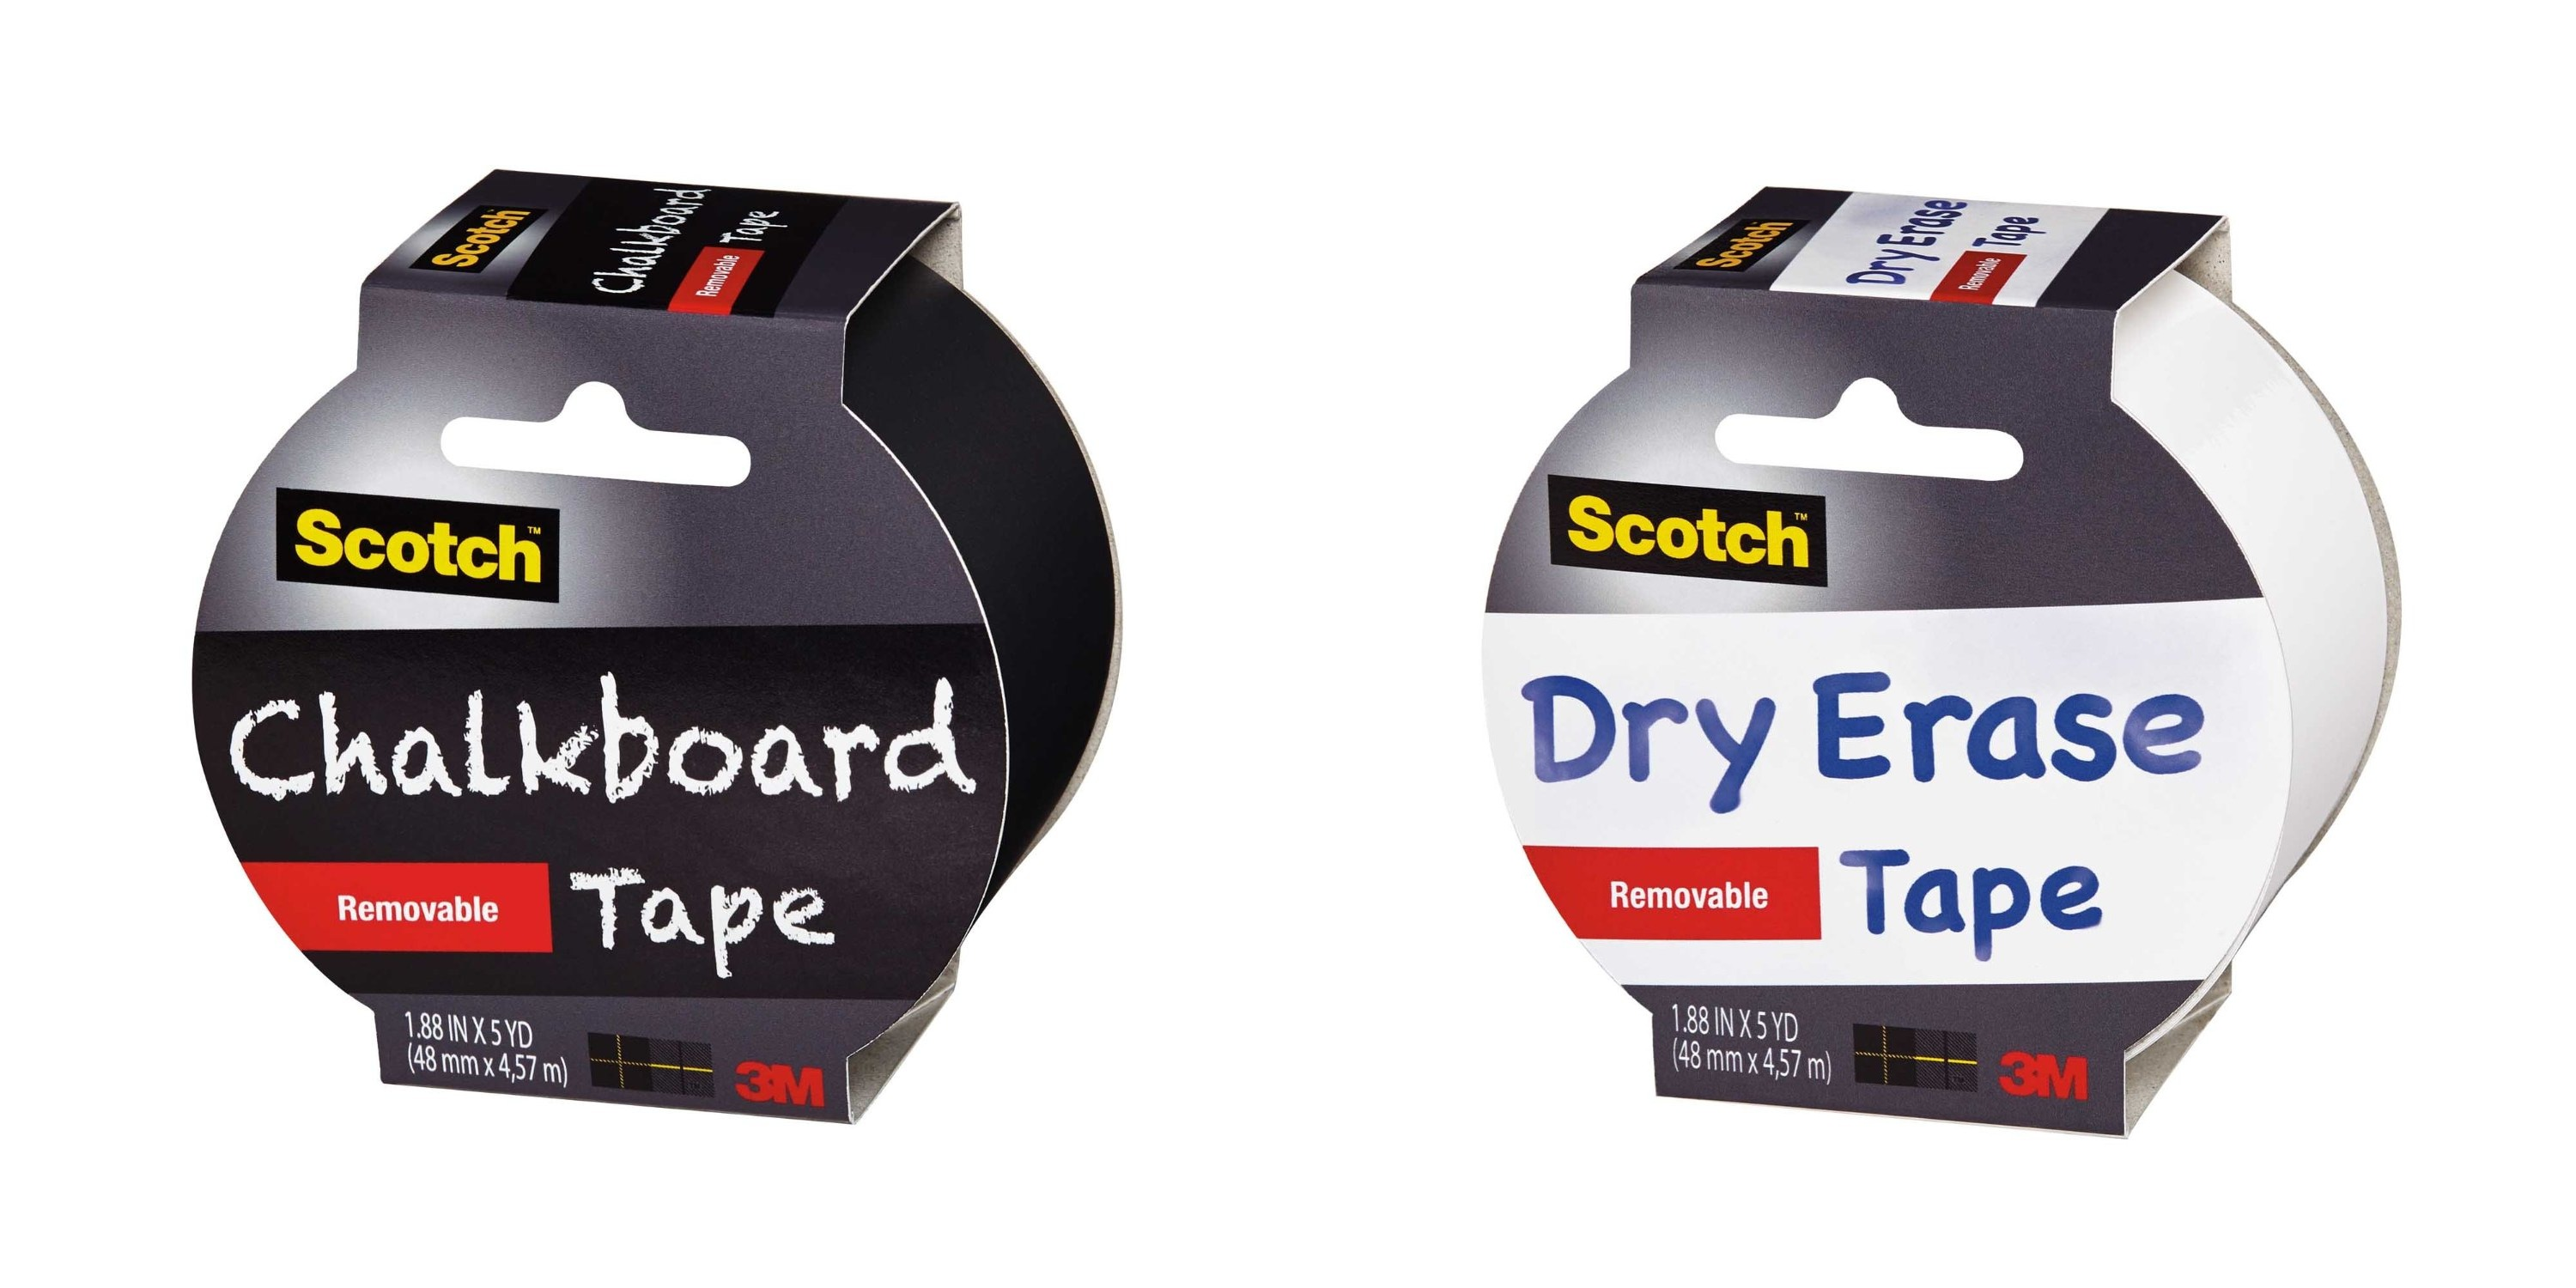 Scotch Chalkboard Dry Erase Tape